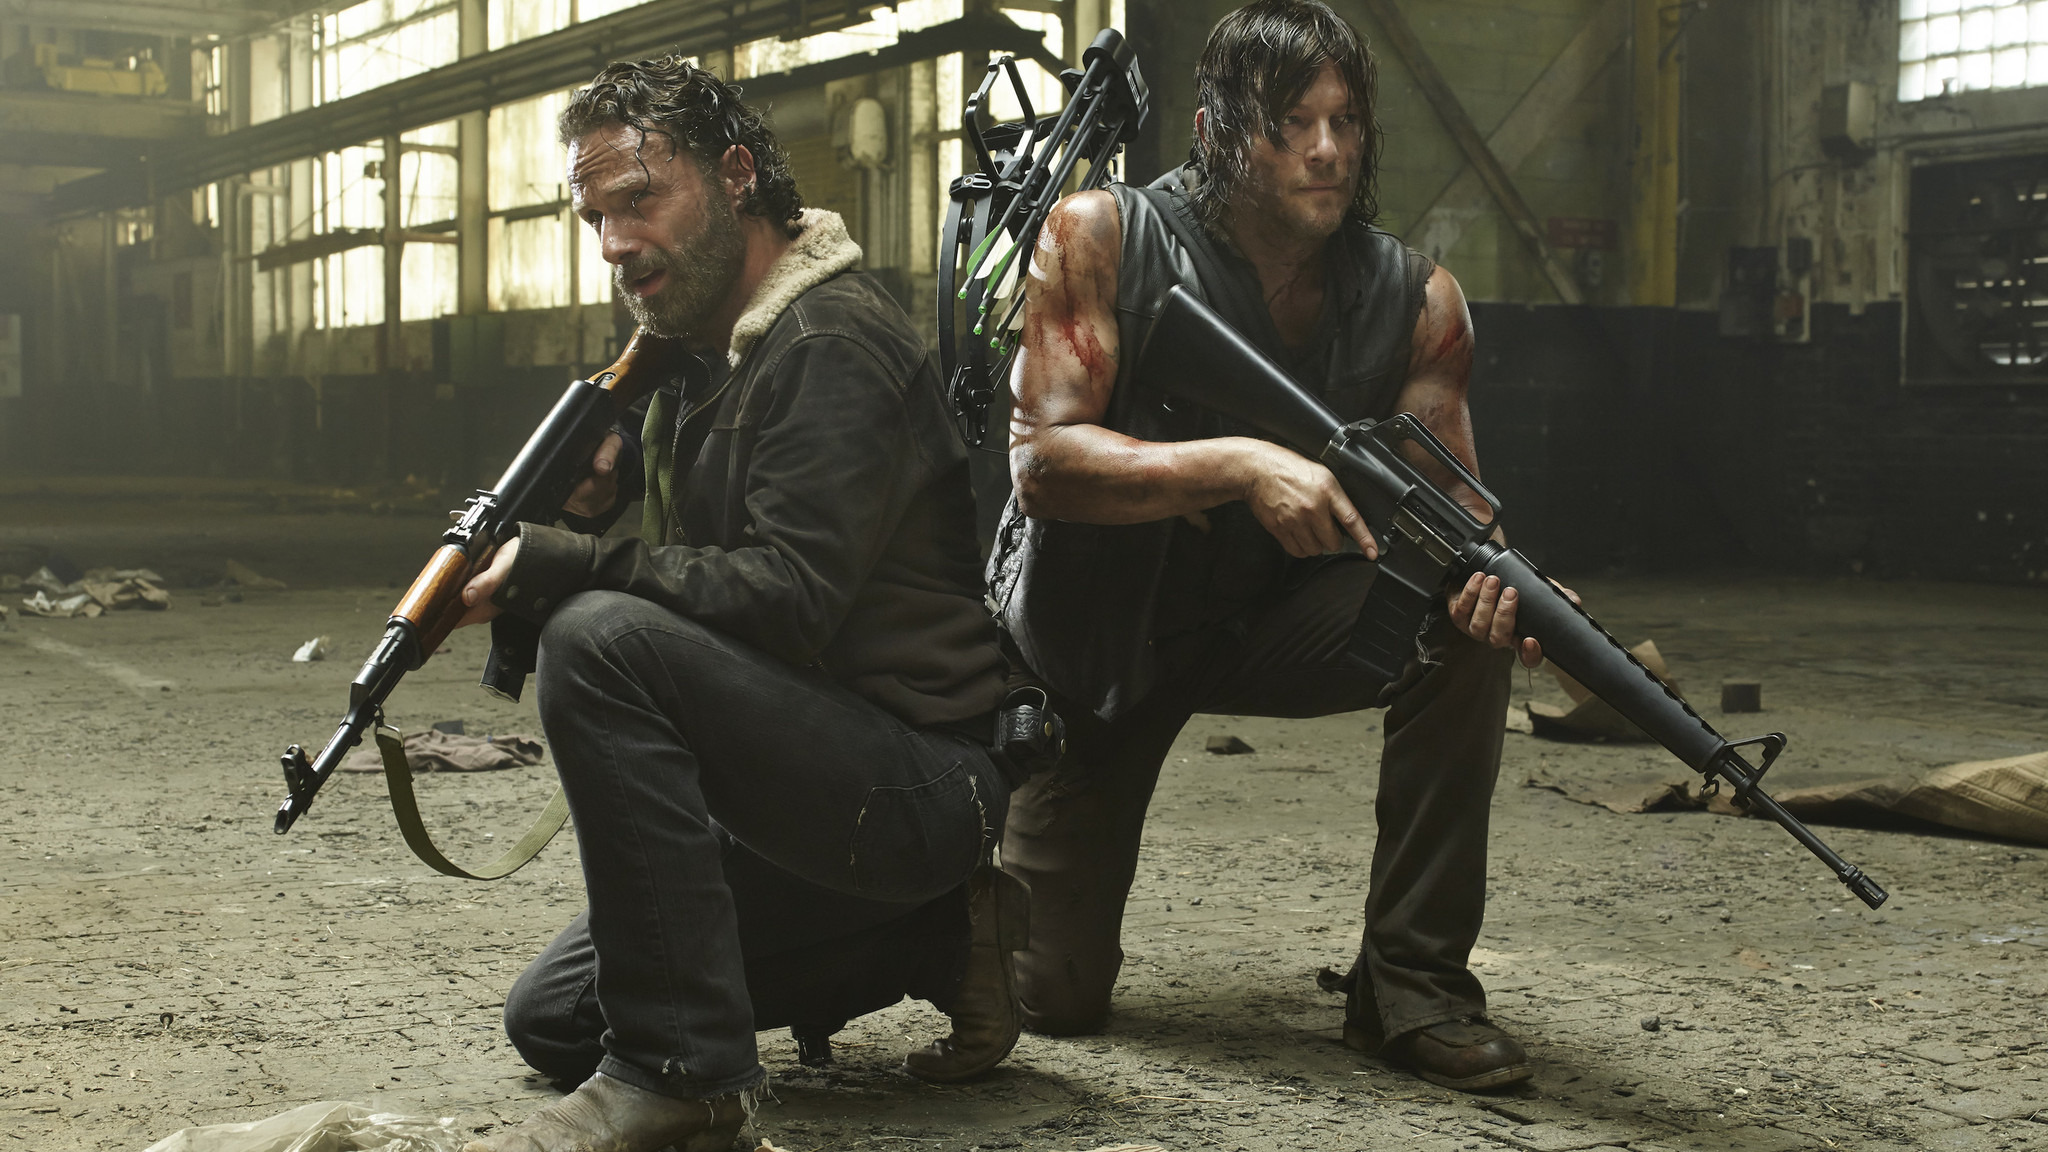 Serie tv da vedere simili a The Walking Dead